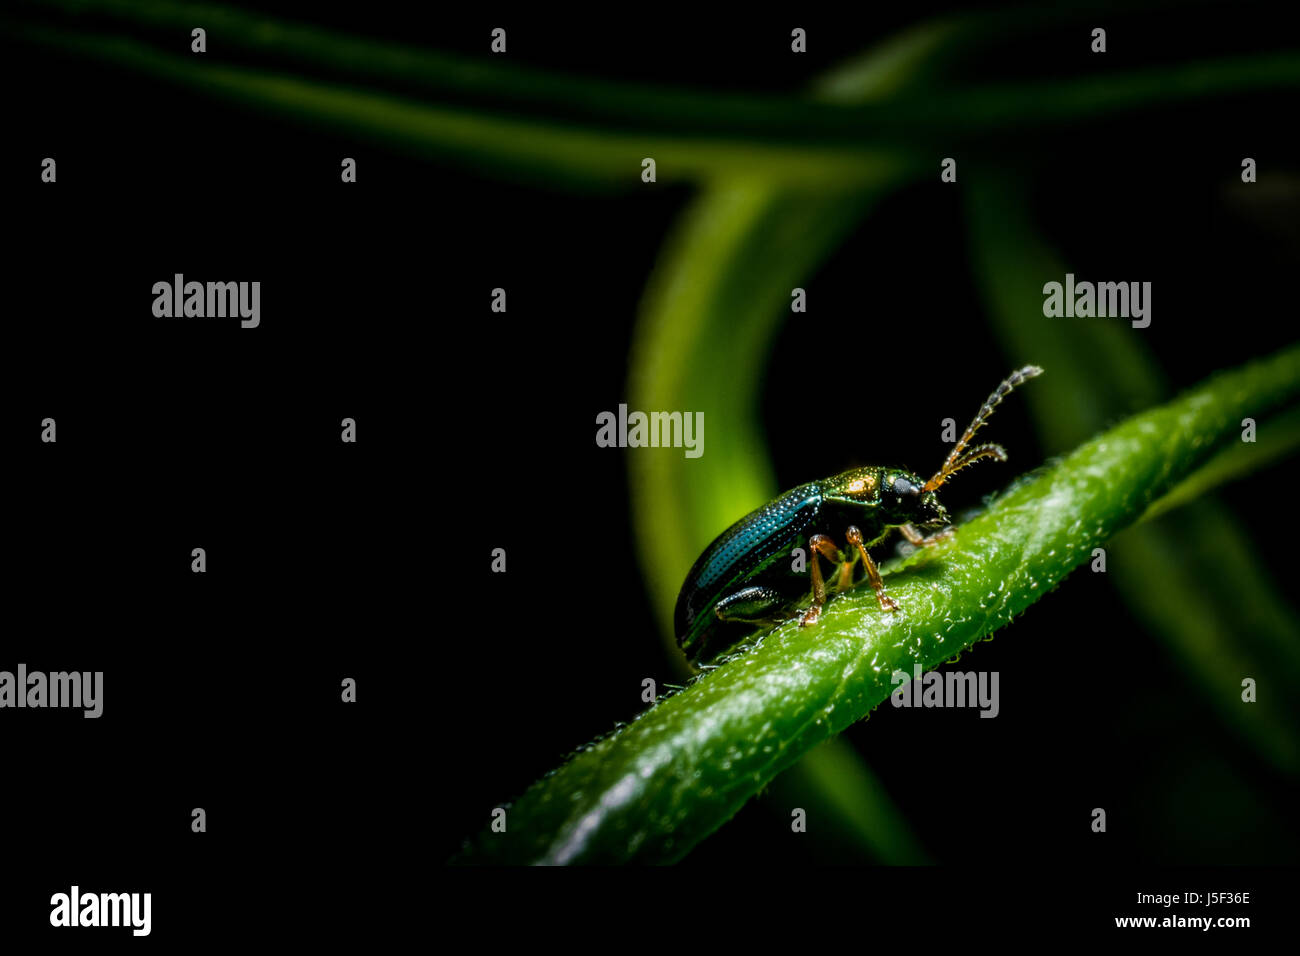 Litlle metallic bug on green grass in forest macro photo - Stock Image